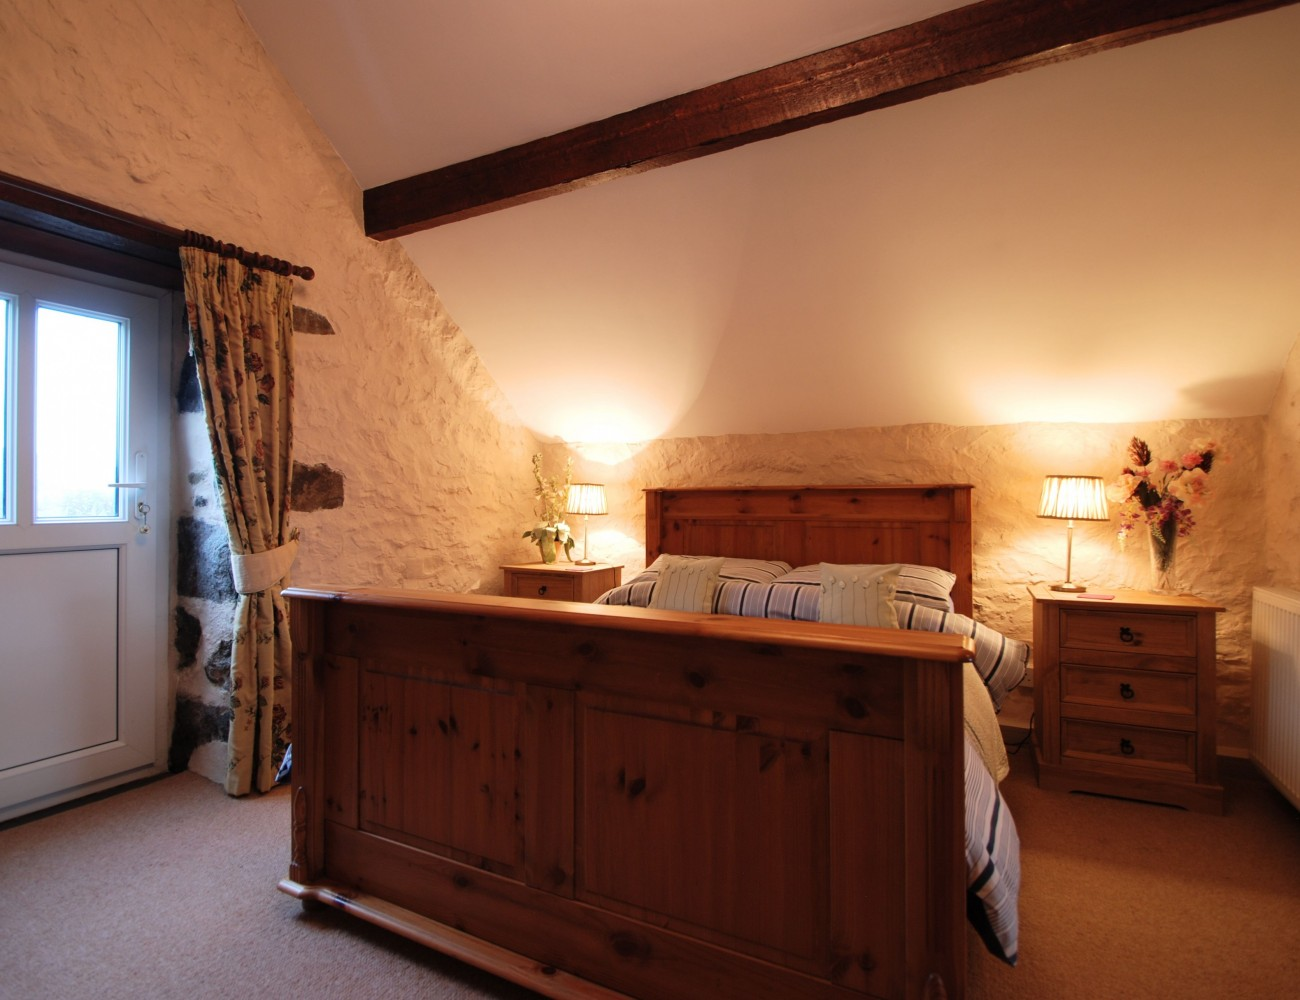 Llwyn y gwaew farm unique holiday cottages for Llwyn y brain dining room